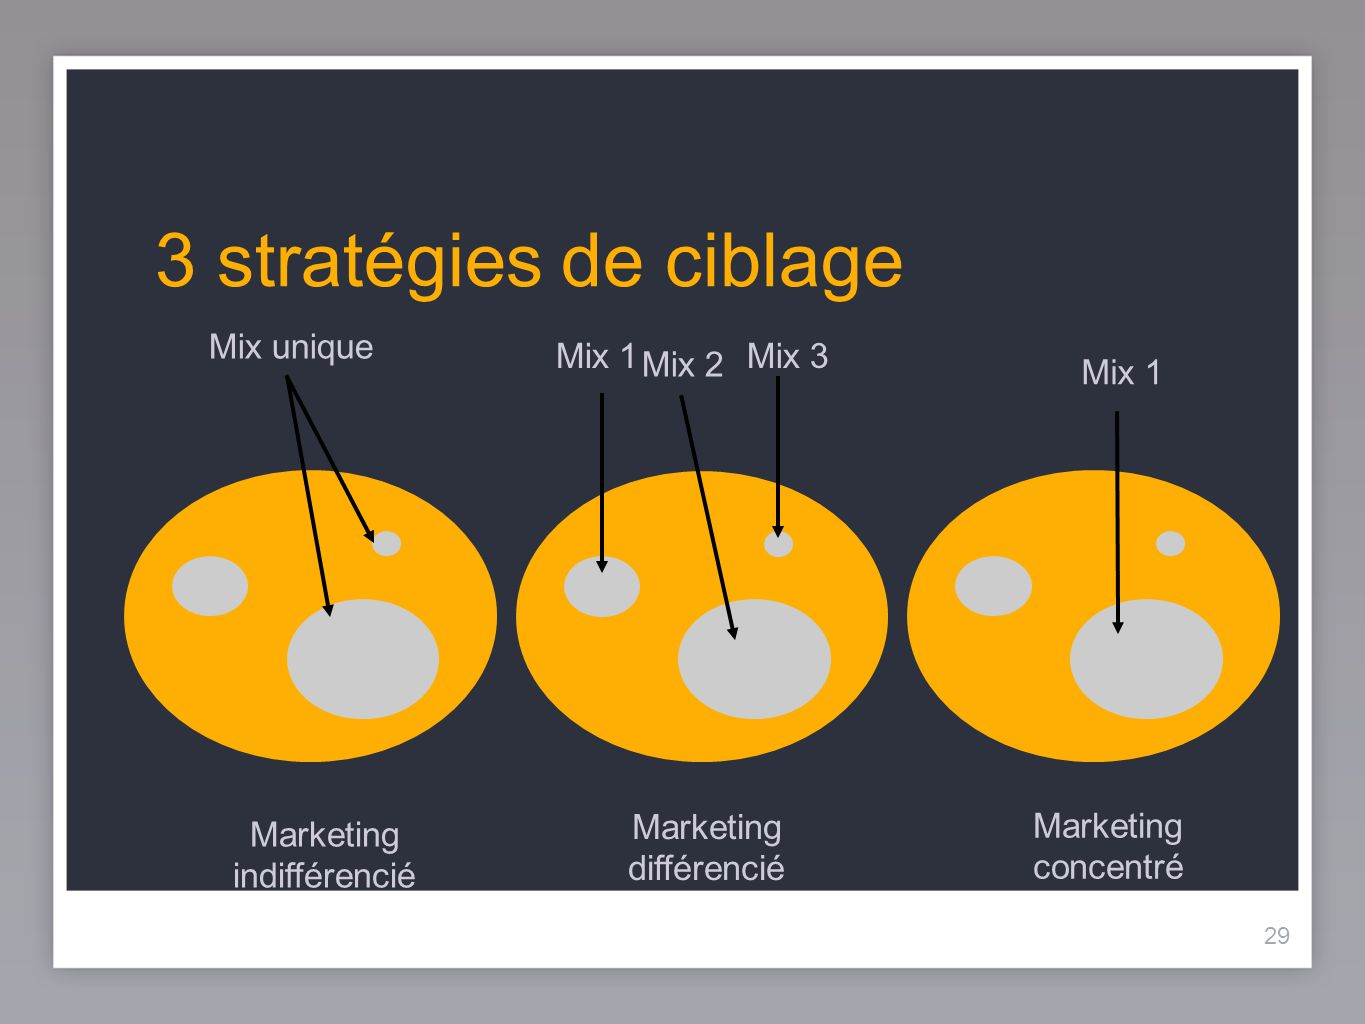 3 stratégies de ciblage Mix 1 Mix 3 Mix 2 Mix unique Mix 1 Marketing